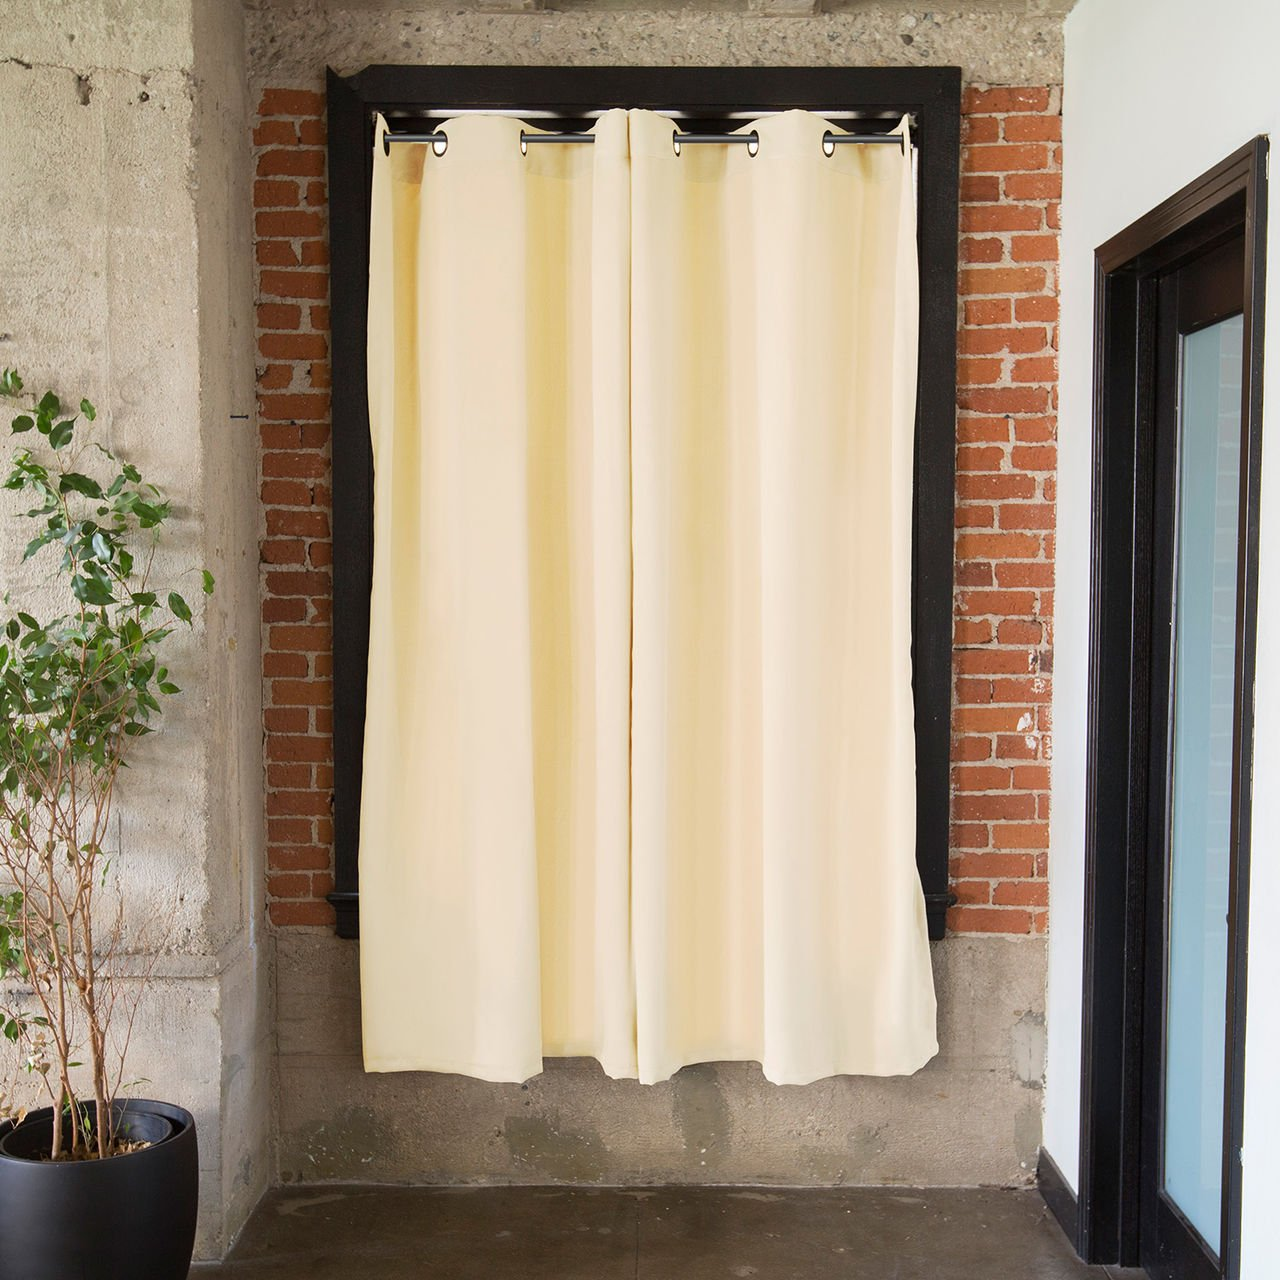 CurtainKitsNow Premium Heavyweight Tension Rod Curtain Kit - Large C, Includes Two Ivory 96'' x 50'' Wide Panels & One 80'' - 100'' Tension Rod) by CurtainKitsNow (Image #2)